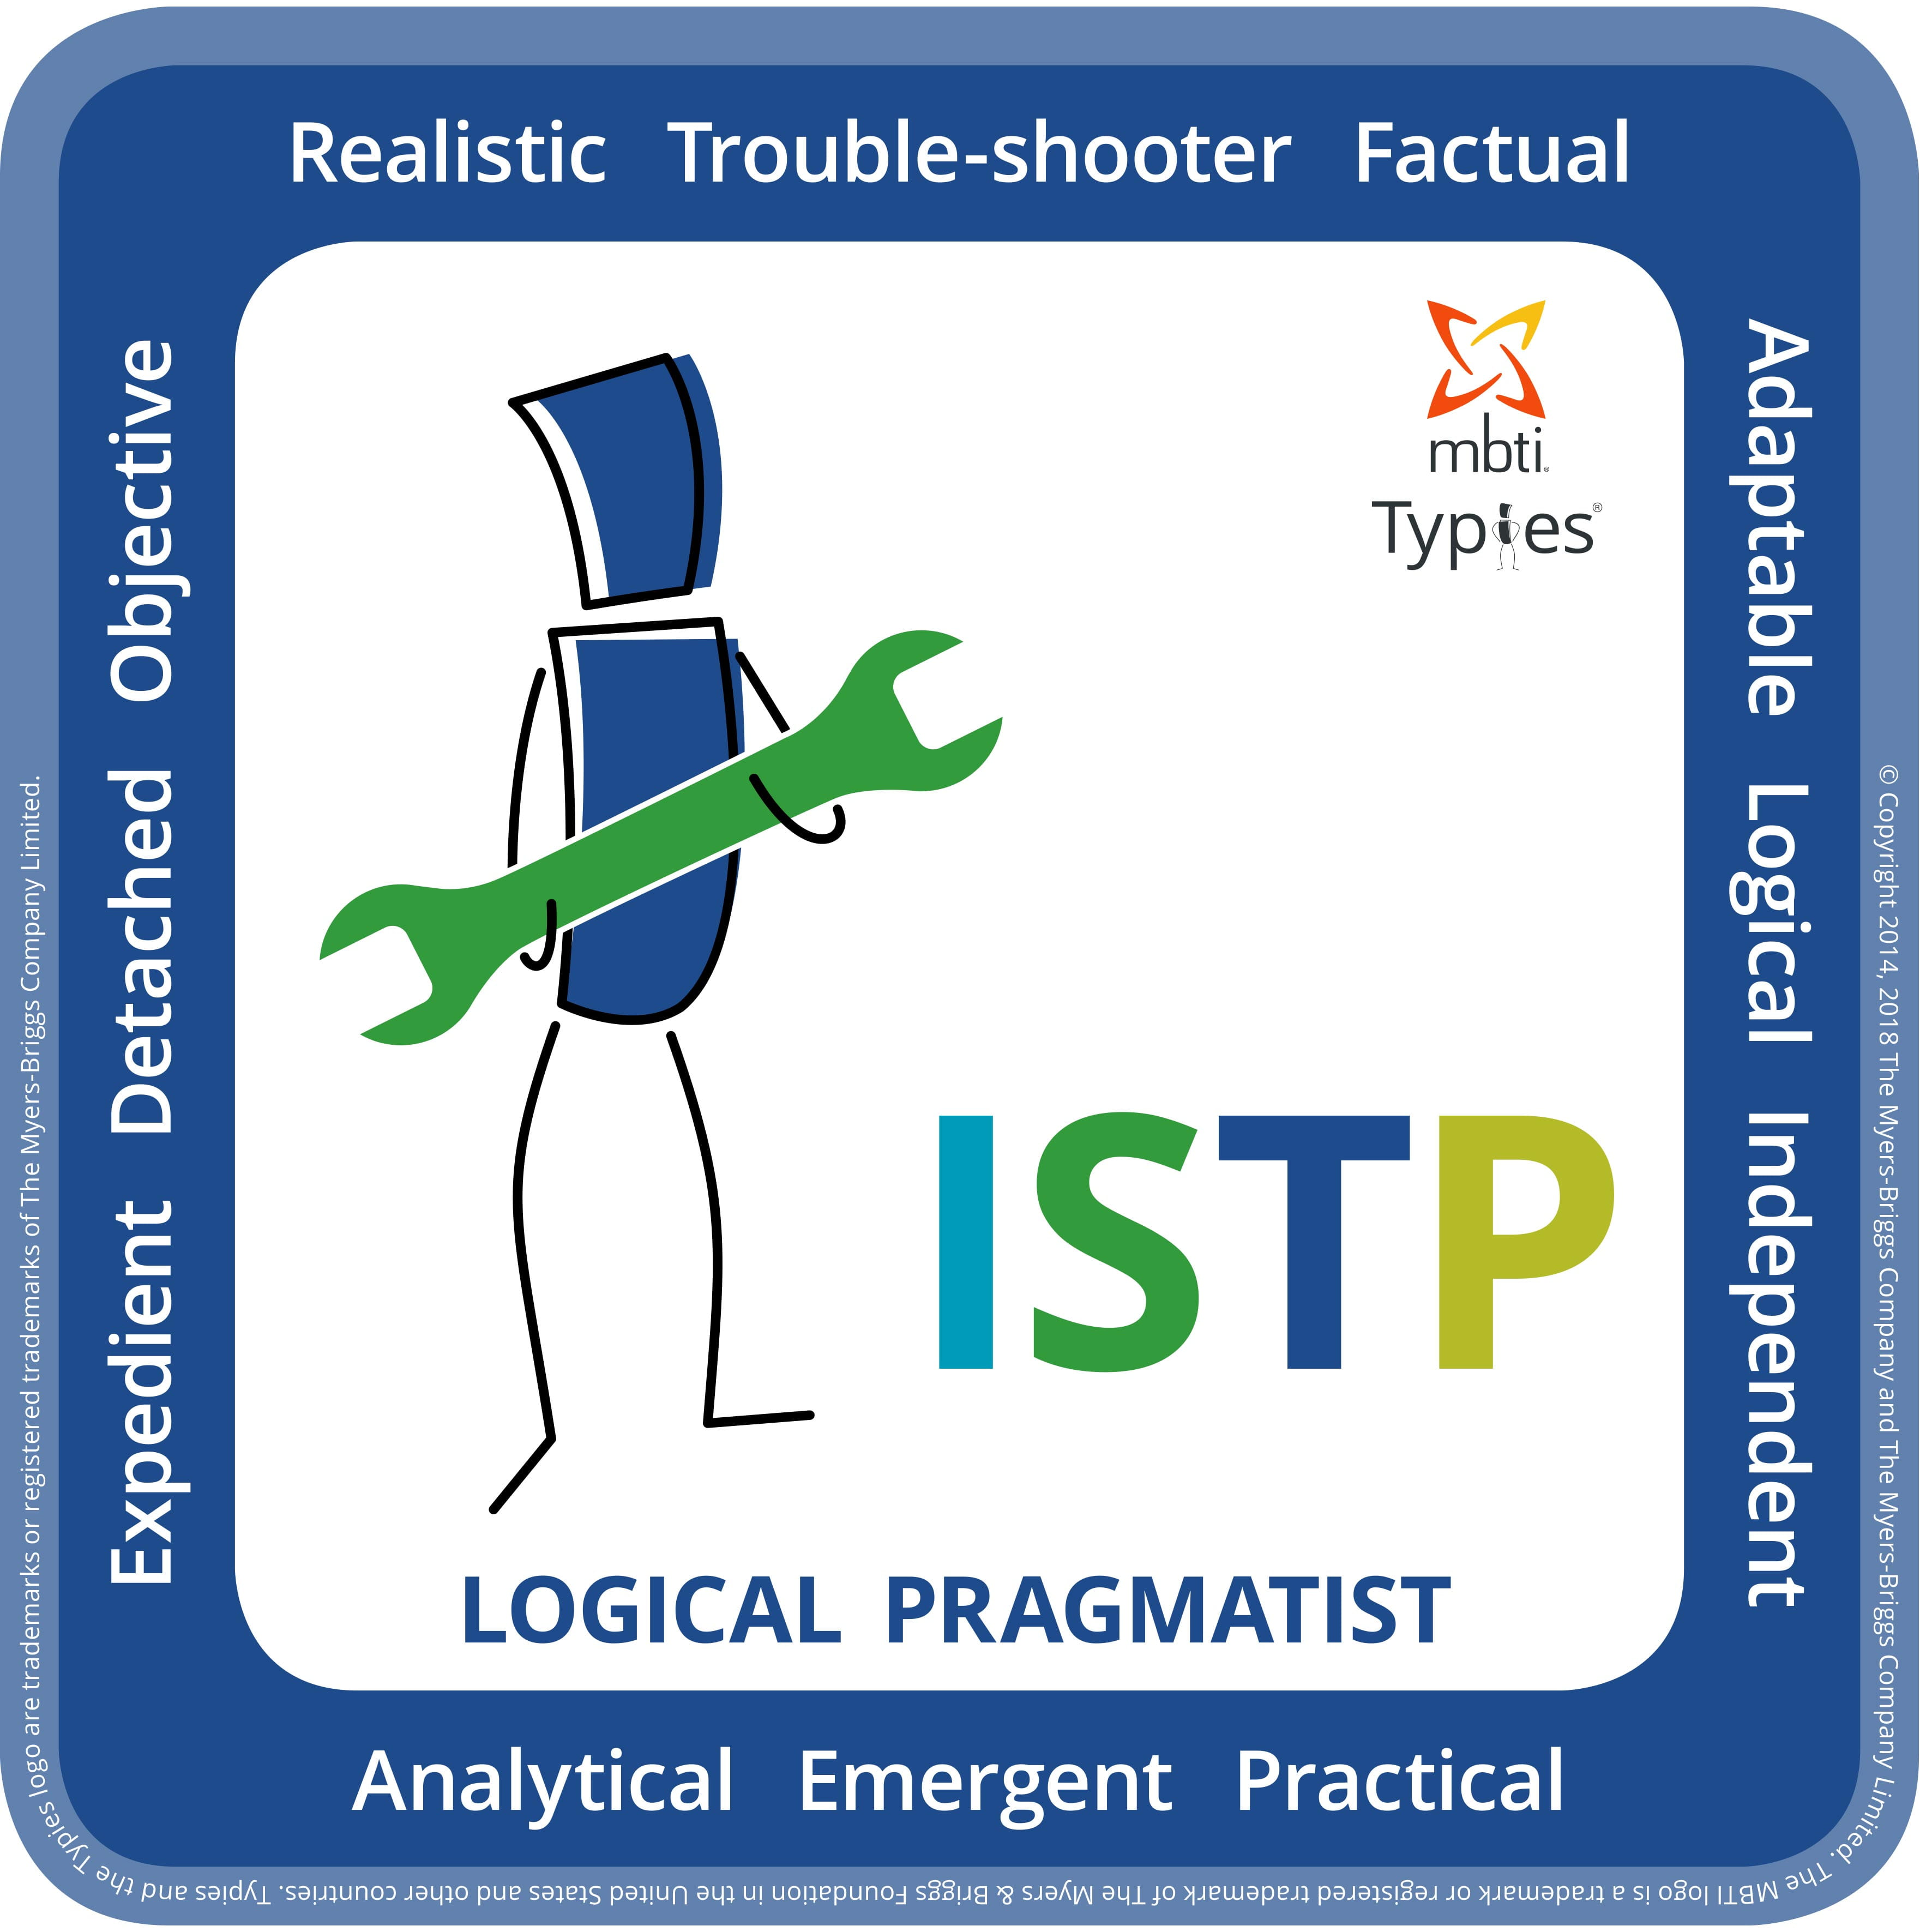 Typical characteristics of an ISTP